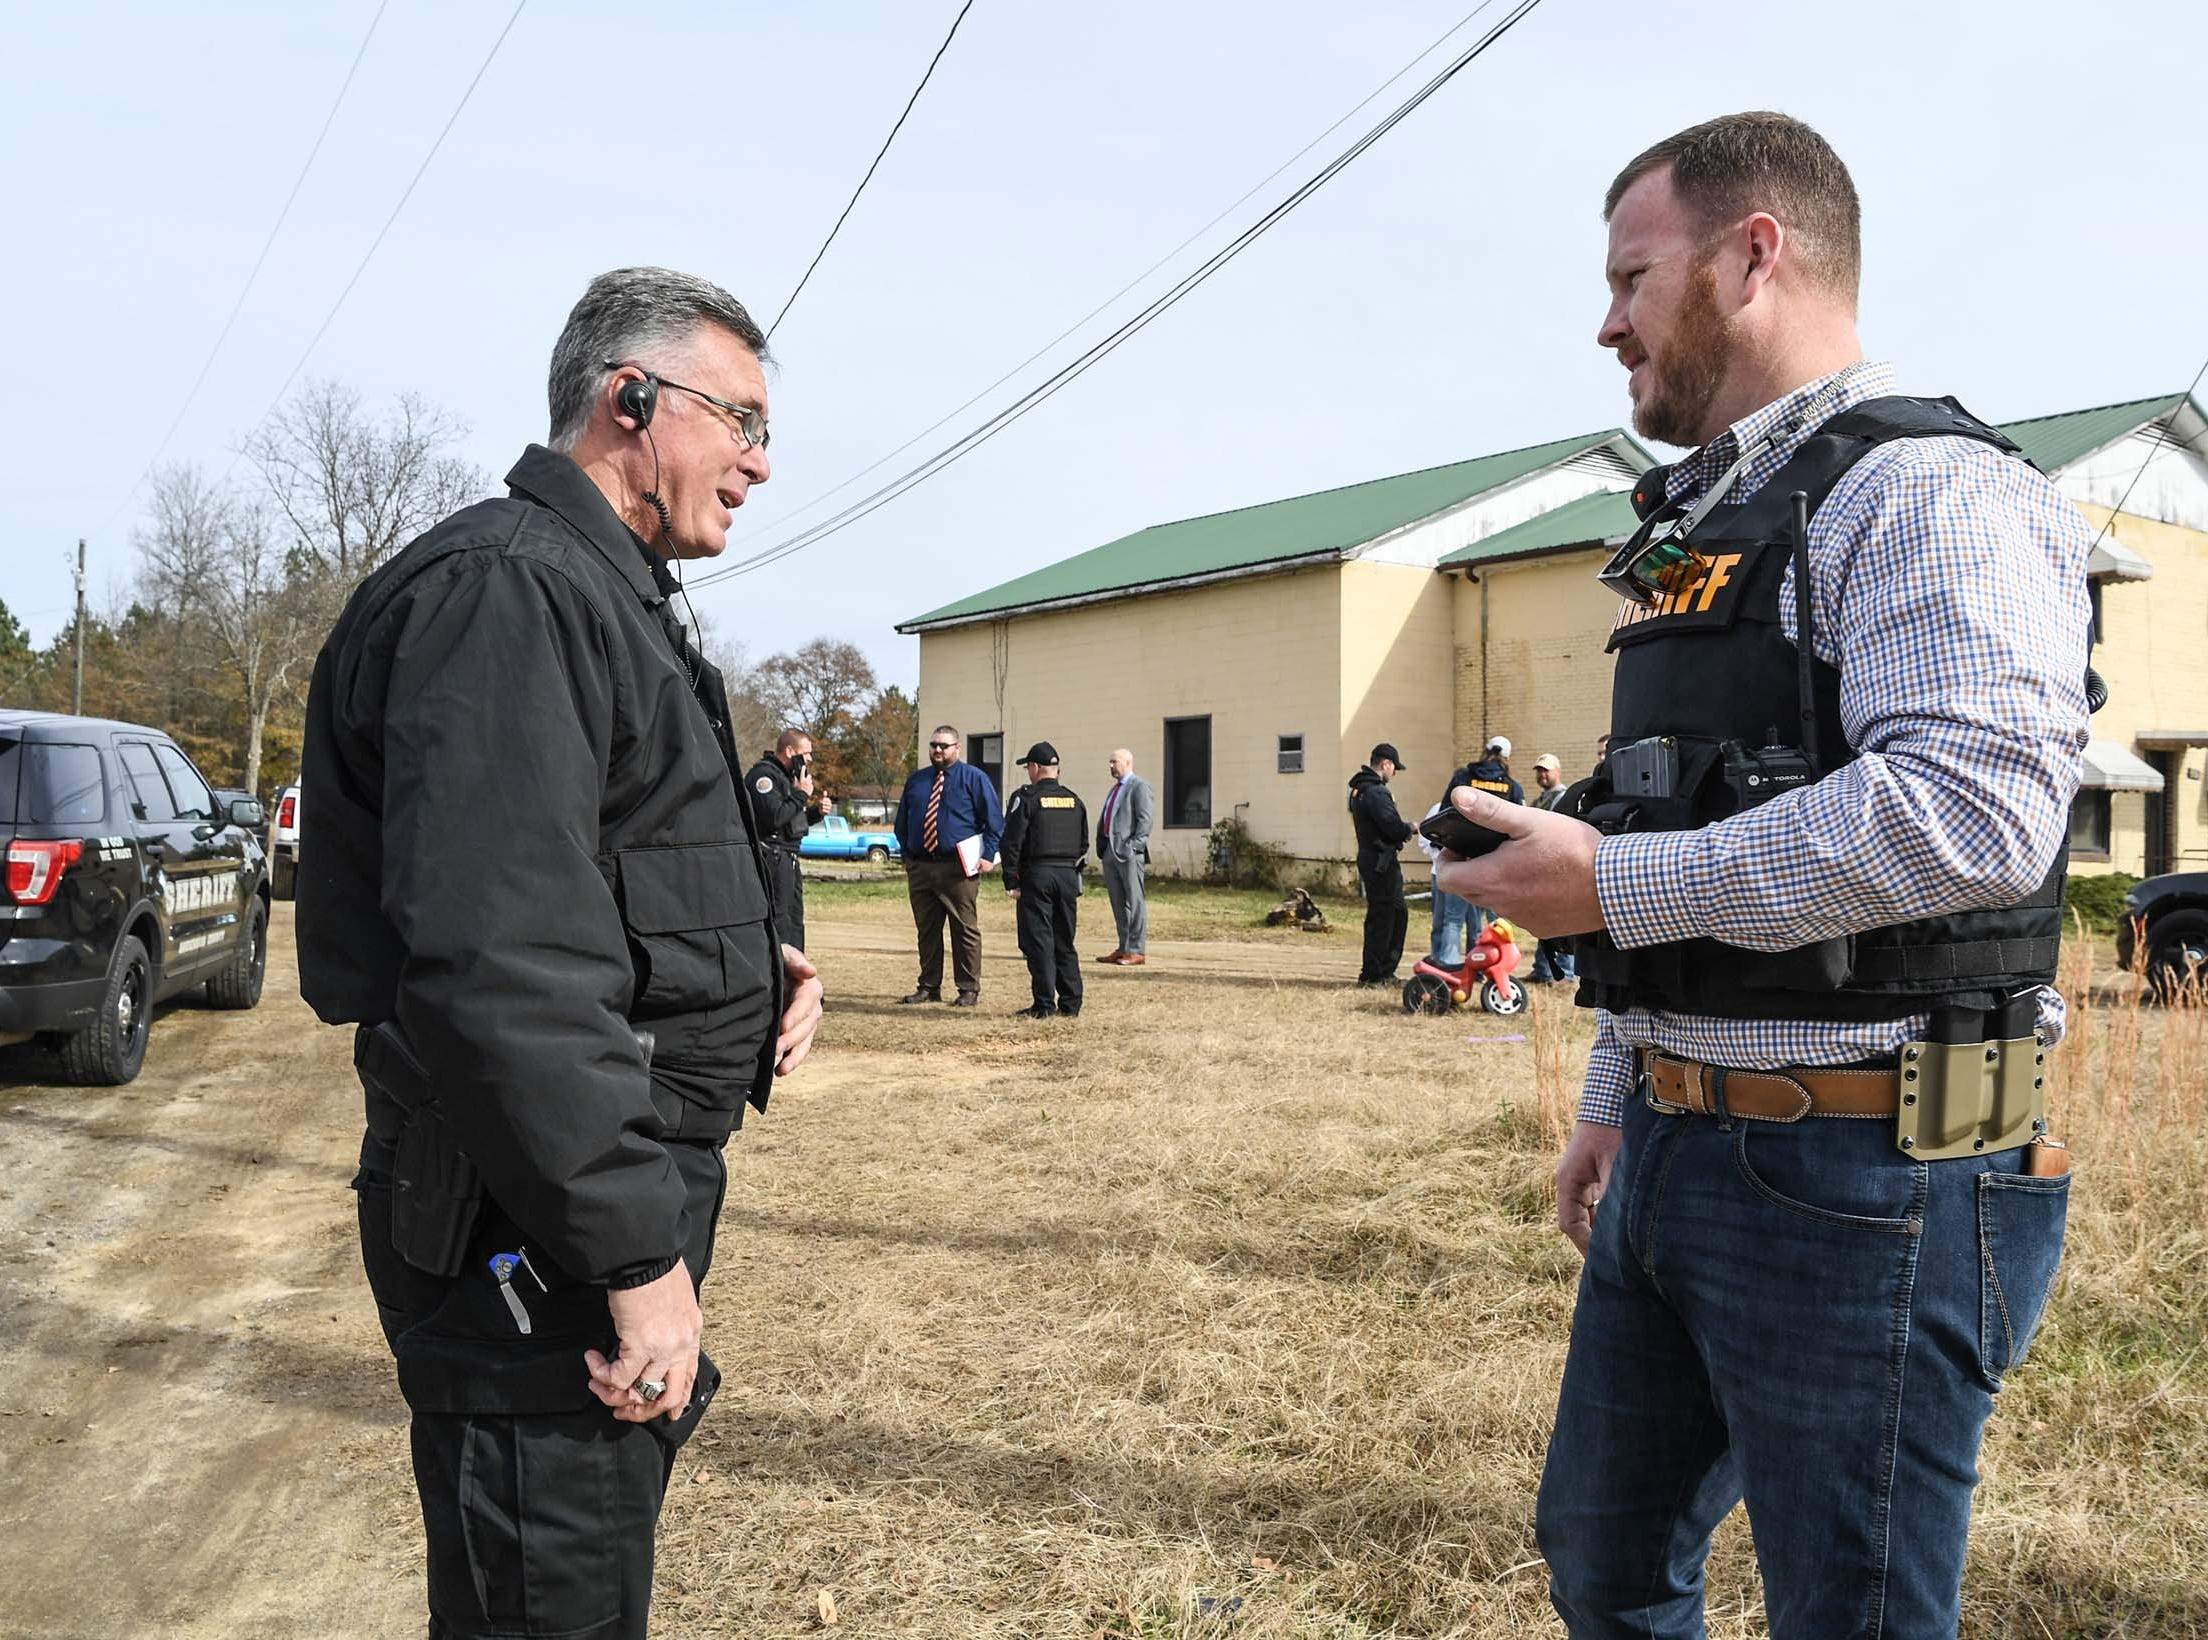 Belton Police Chief Tommy Clamp, left, and Anderson County Sheriff Chad McBrideat Brazeale Street in Belton after a report that a man struck an officer serving a warrant at a house Wednesday, December 12, 2018.